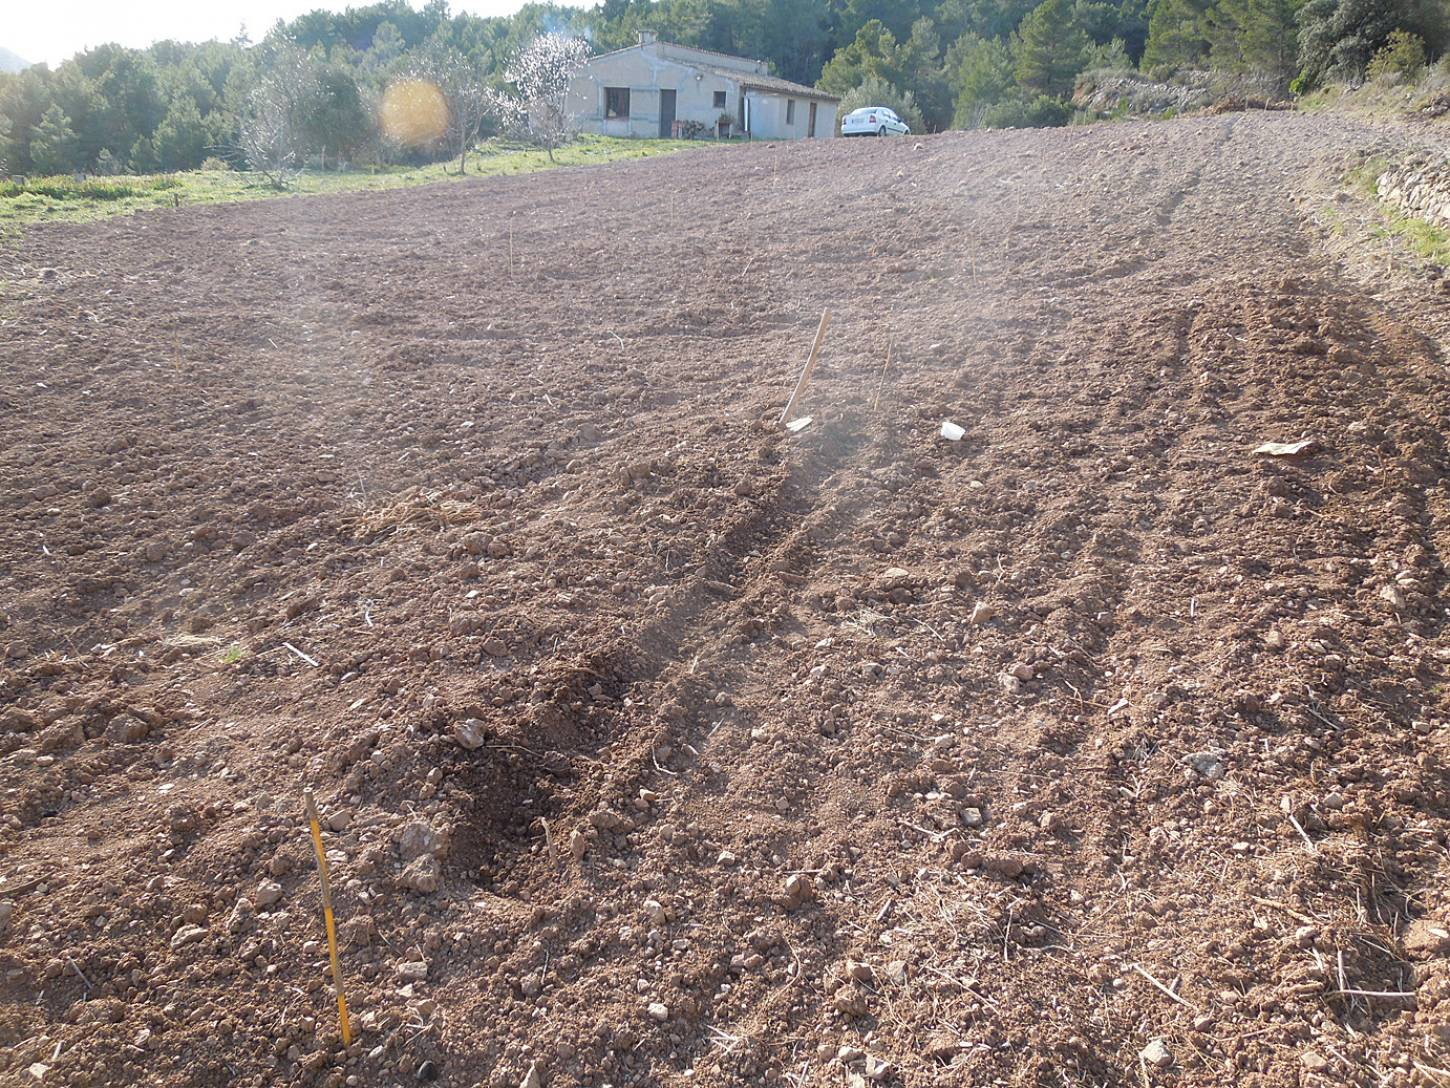 April Bearded sowing, Tivissa, Catalonia - 4:57pm&nbsp;1<sup>st</sup>&nbsp;Mar.&nbsp;'15